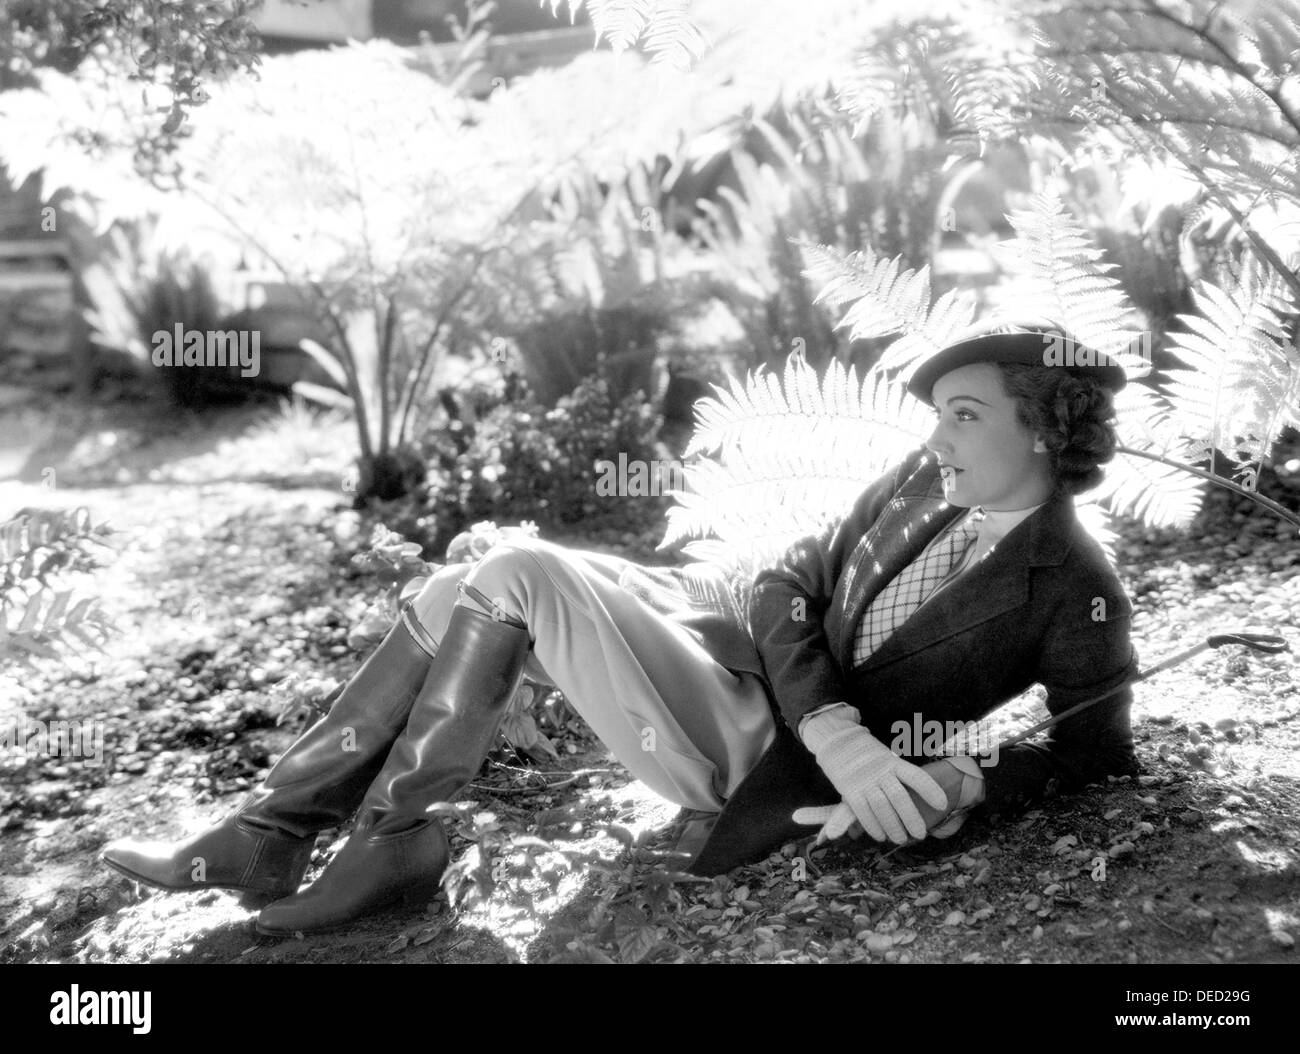 MILLS OF THE GODS  1934 Columbia Pictures film with Fay Wray - Stock Image